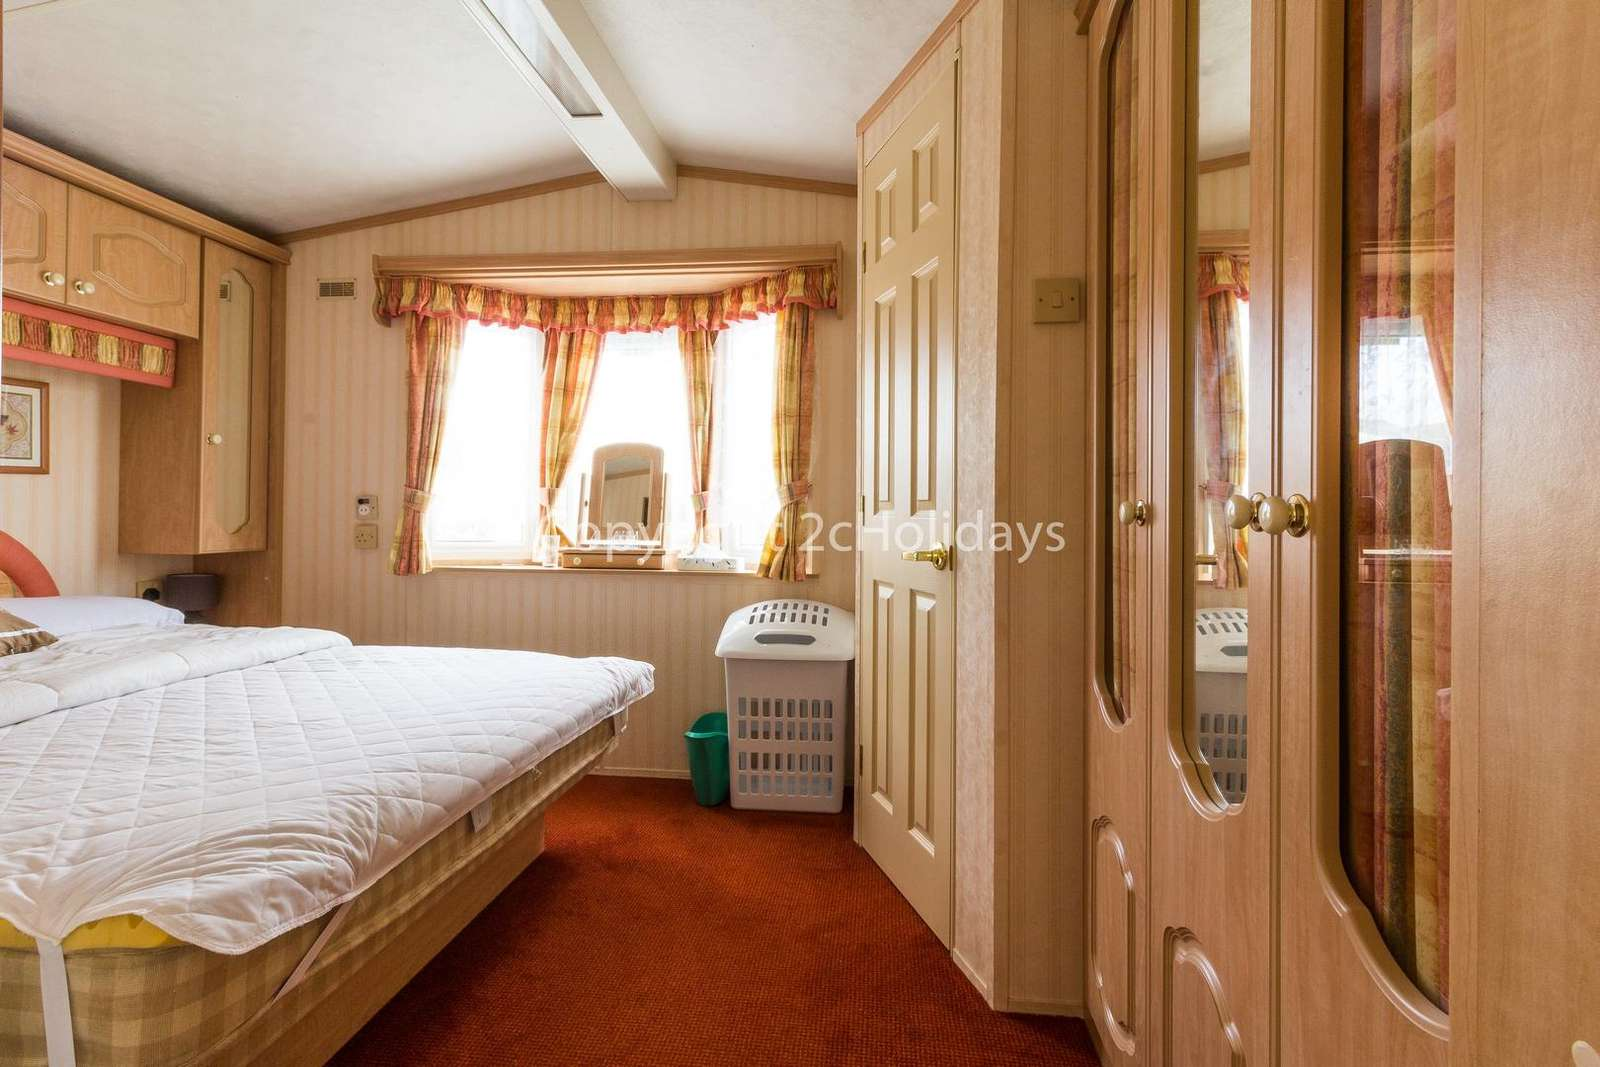 You can find plenty of storage in this master bedroom!